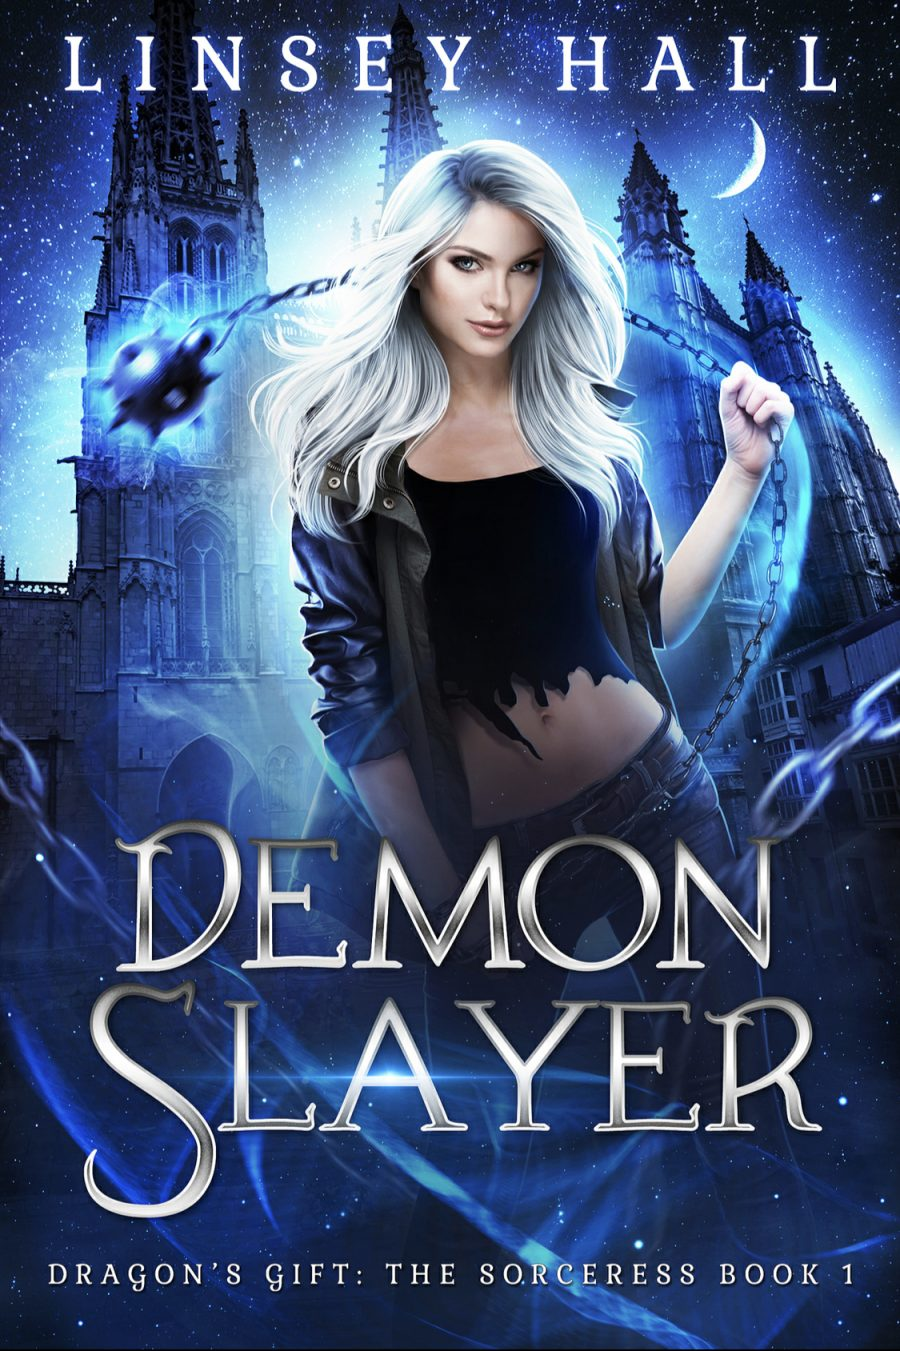 Demon Slayer: Dragon's Gift - The Sorceress Book 1 - by Linsey Hall - A Book Review #BookReview #UrbanFantasy #UF #DragonGift #4Stars #KindleUnlimited